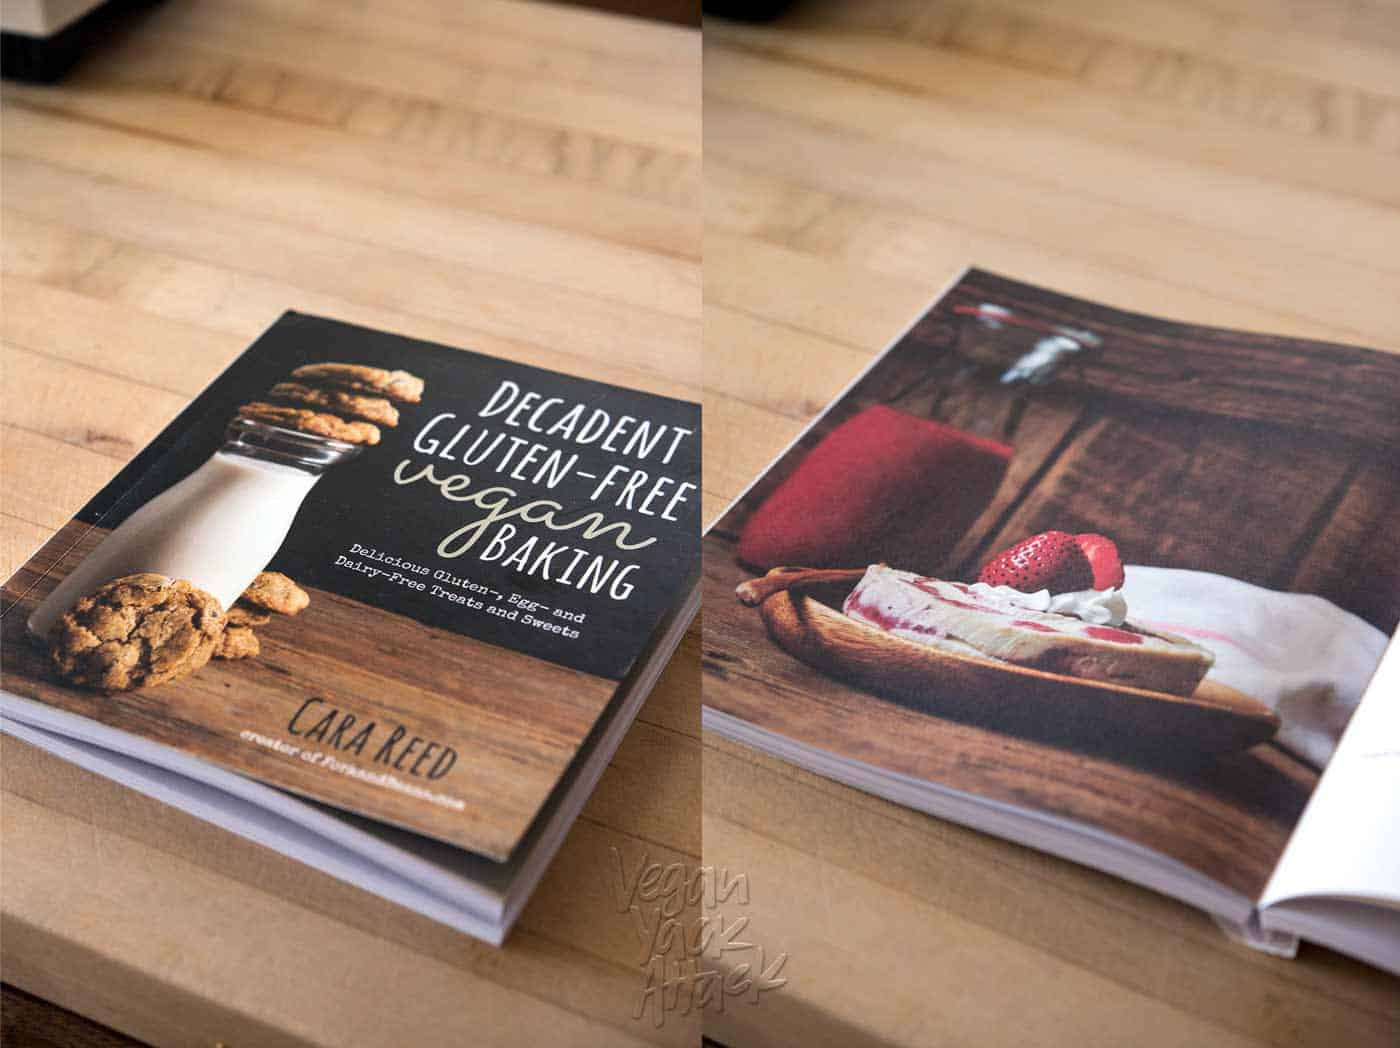 Decadent gluten-free vegan baking cookbook closed and open on counter